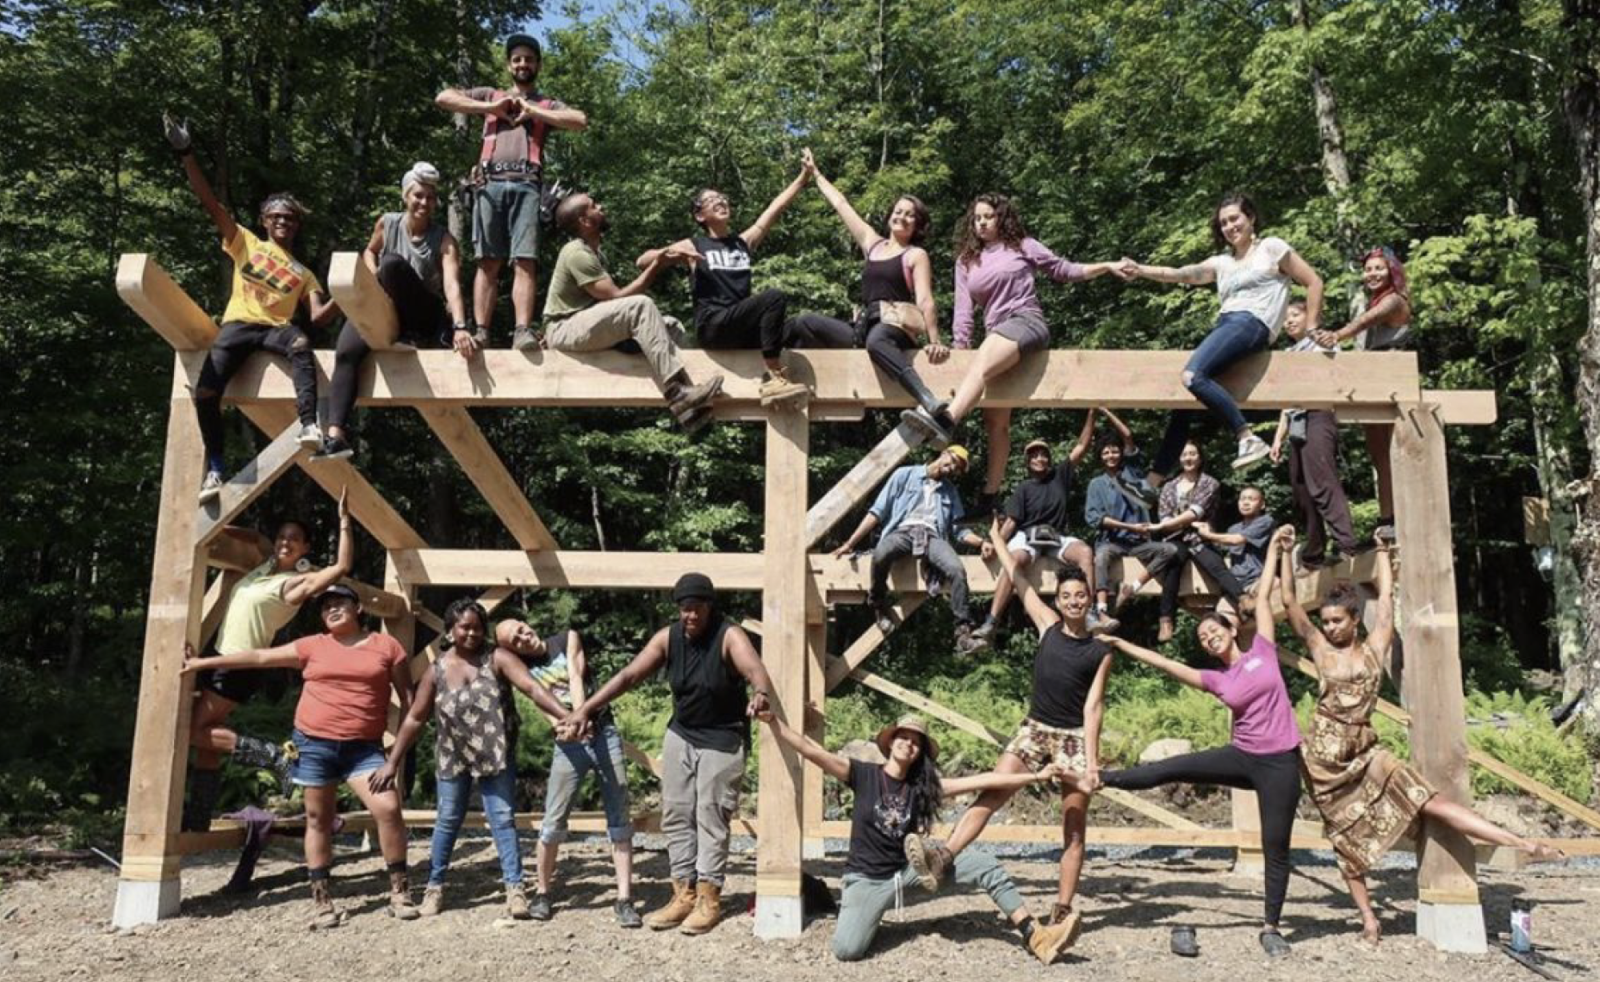 A photo of a group of young BIPOC people posing under, amongst, and on top of a timber structure.